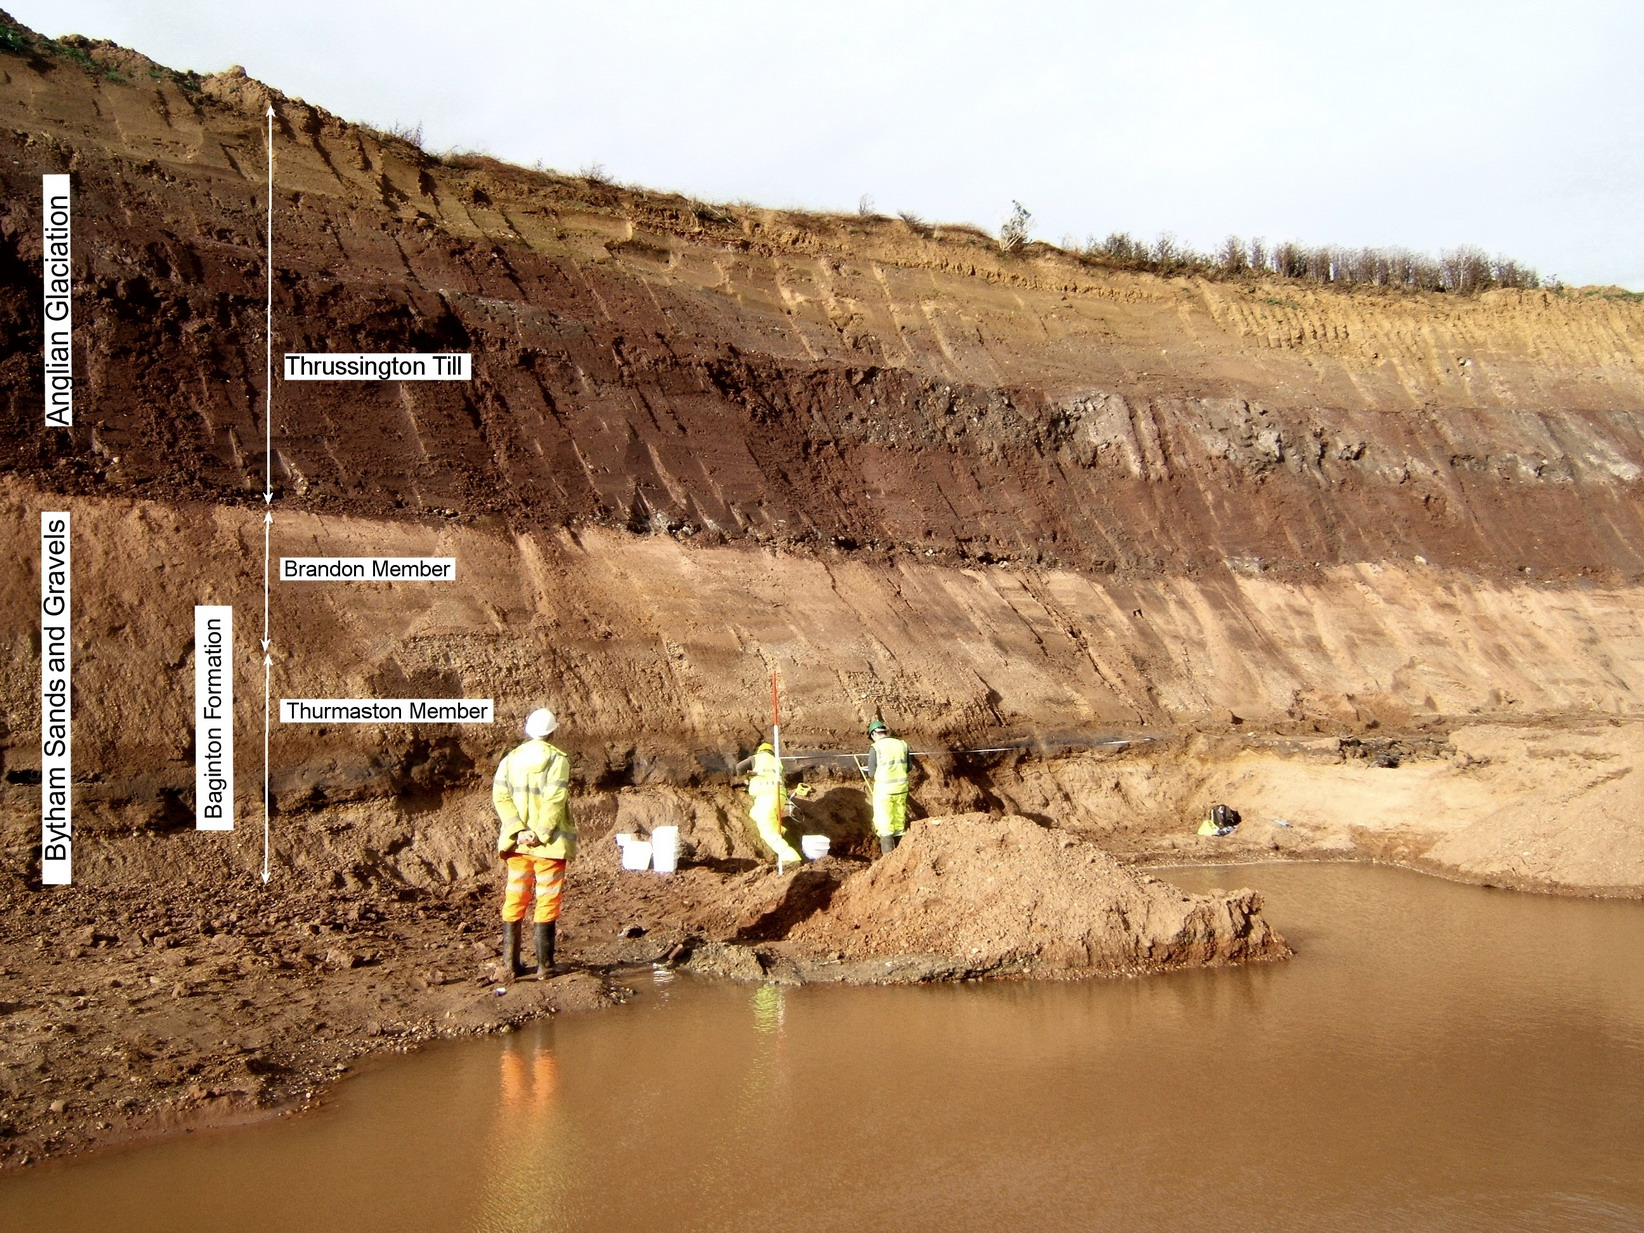 A photo of a deep pit, showing four clear horizontal bands in an earth wall approximately 8 metres high. The bottom of the pit is full of water, where three people are working.